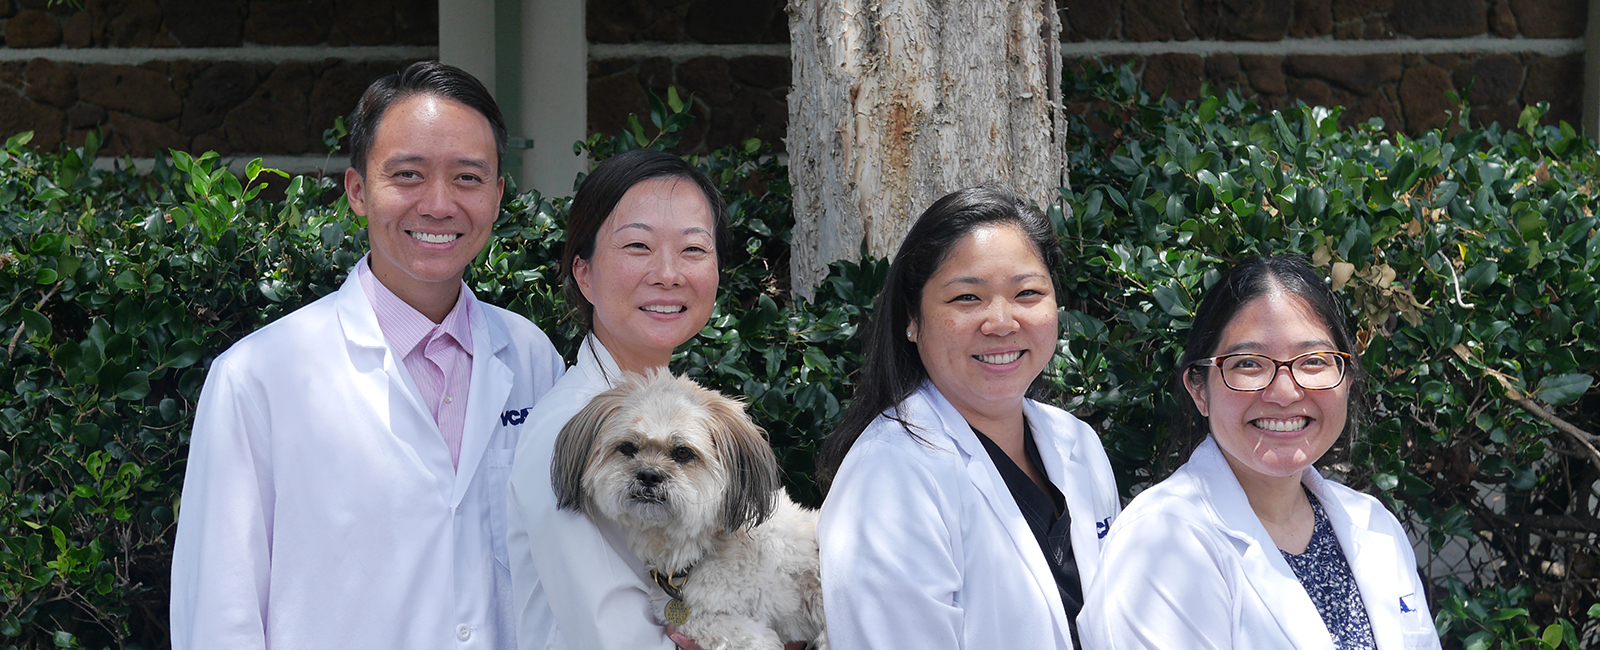 Team Picture of VCA University Animal Hospital